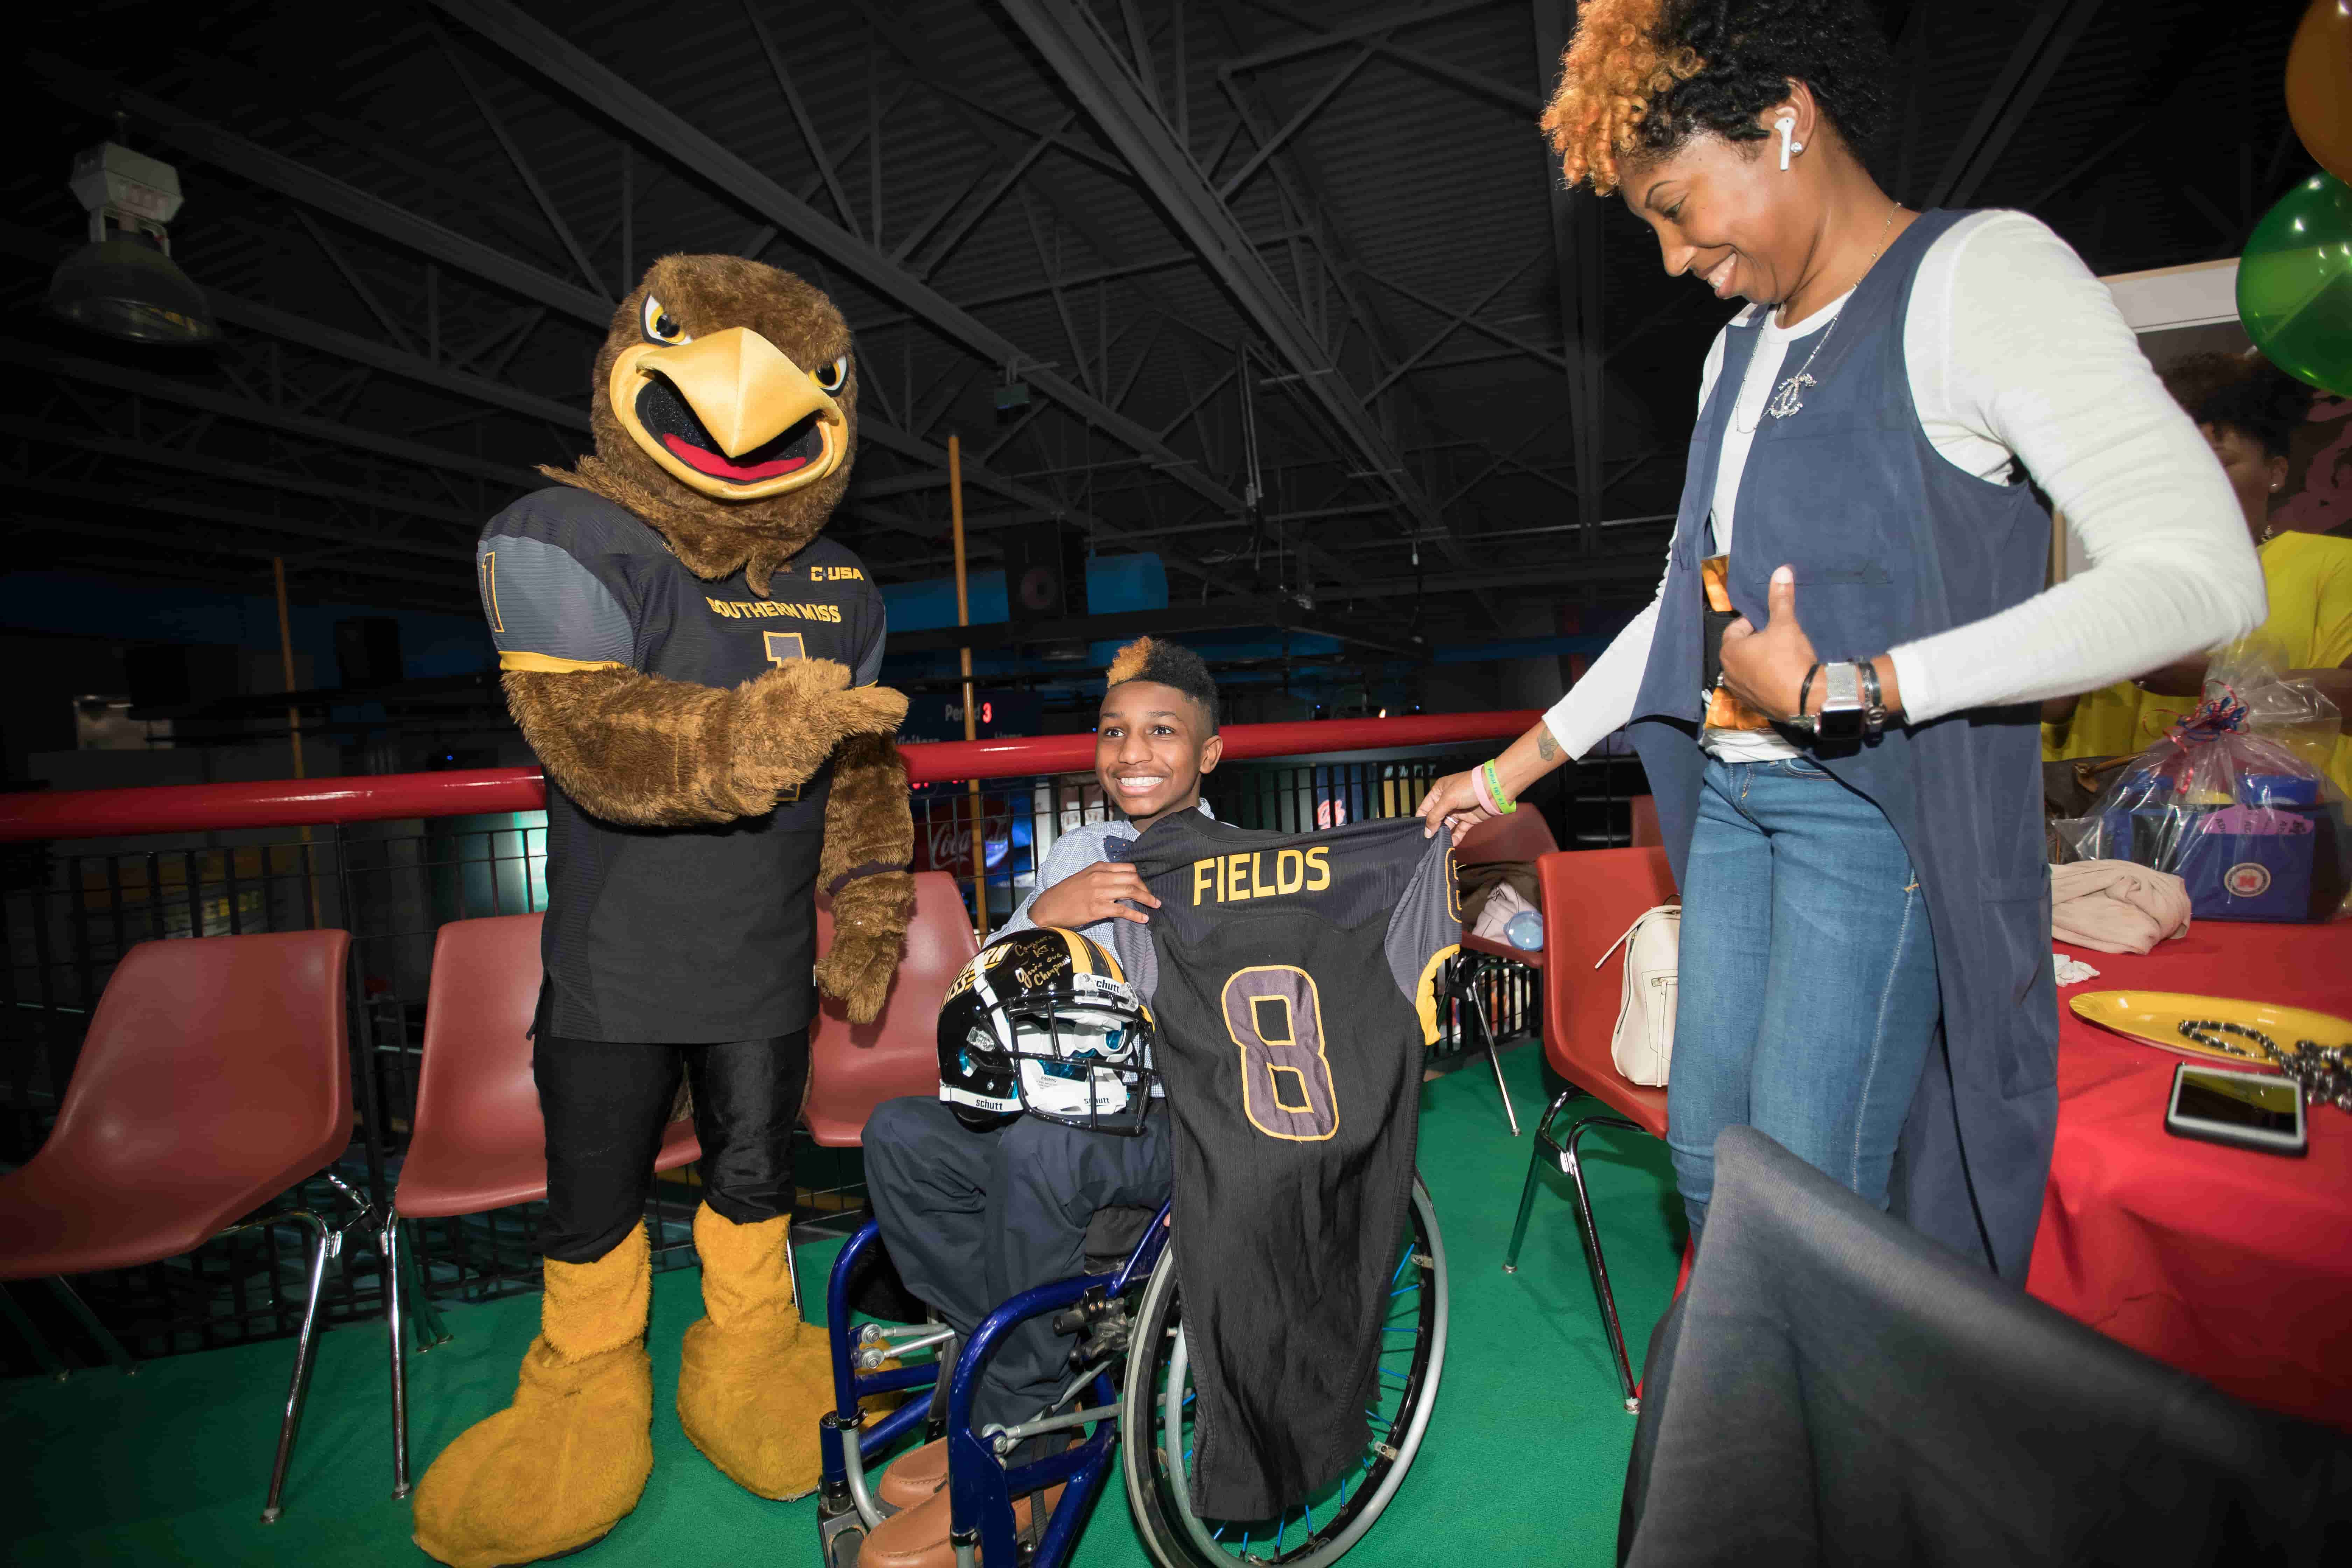 2018 Children's Miracle Network Champion KJ Fields and mom DeeWanda Fields, a University of Southern Mississippi alumna, smile with Southern Miss mascot Seymour.